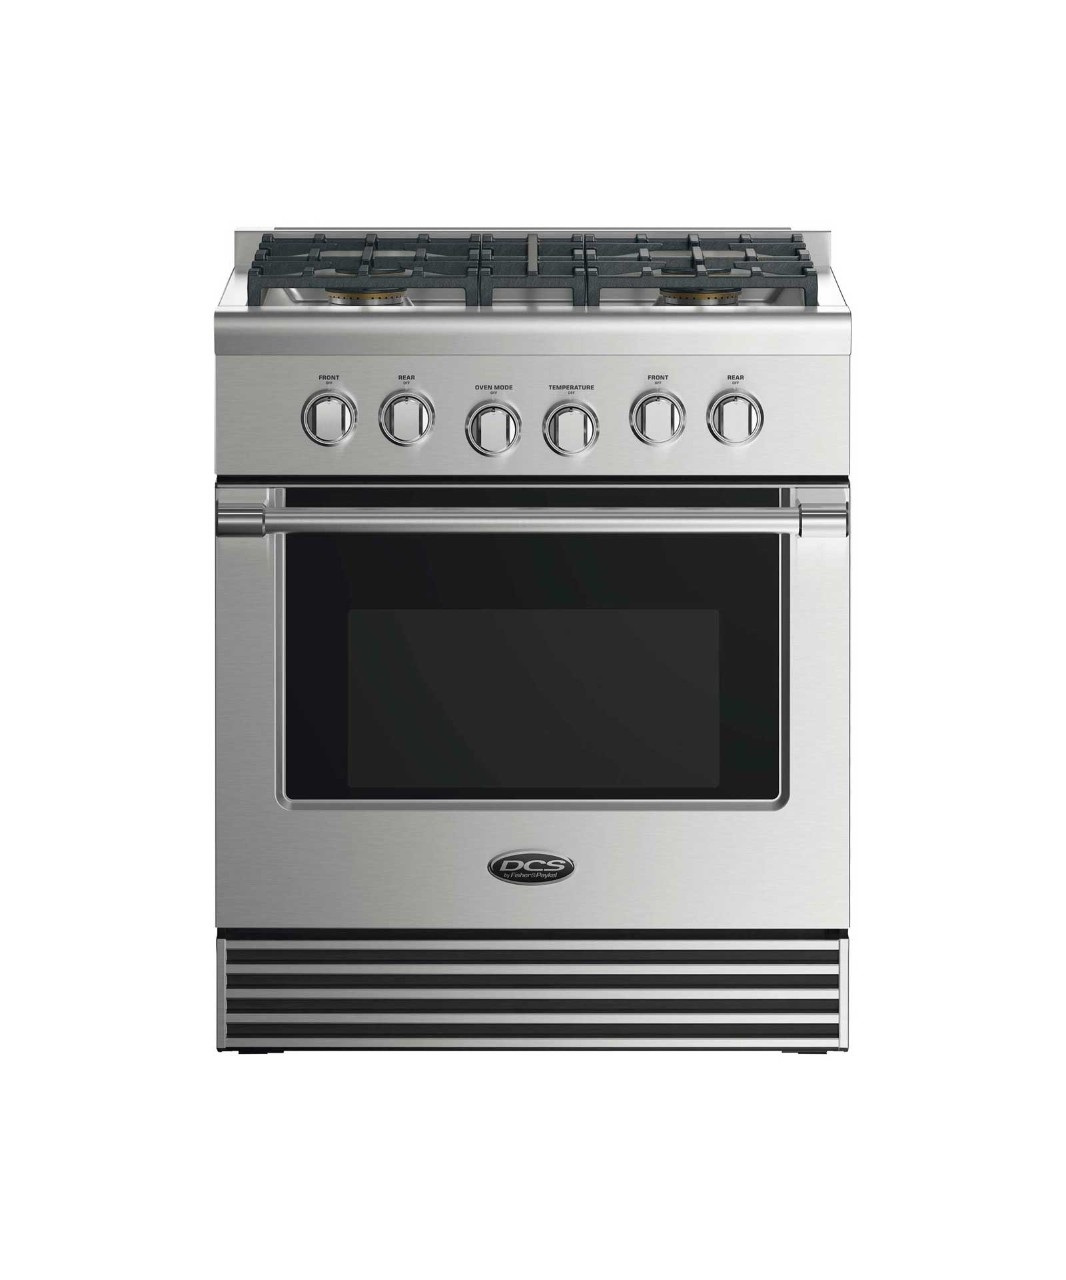 "DCS 30"" GAS RANGE: 4 BURNERS"